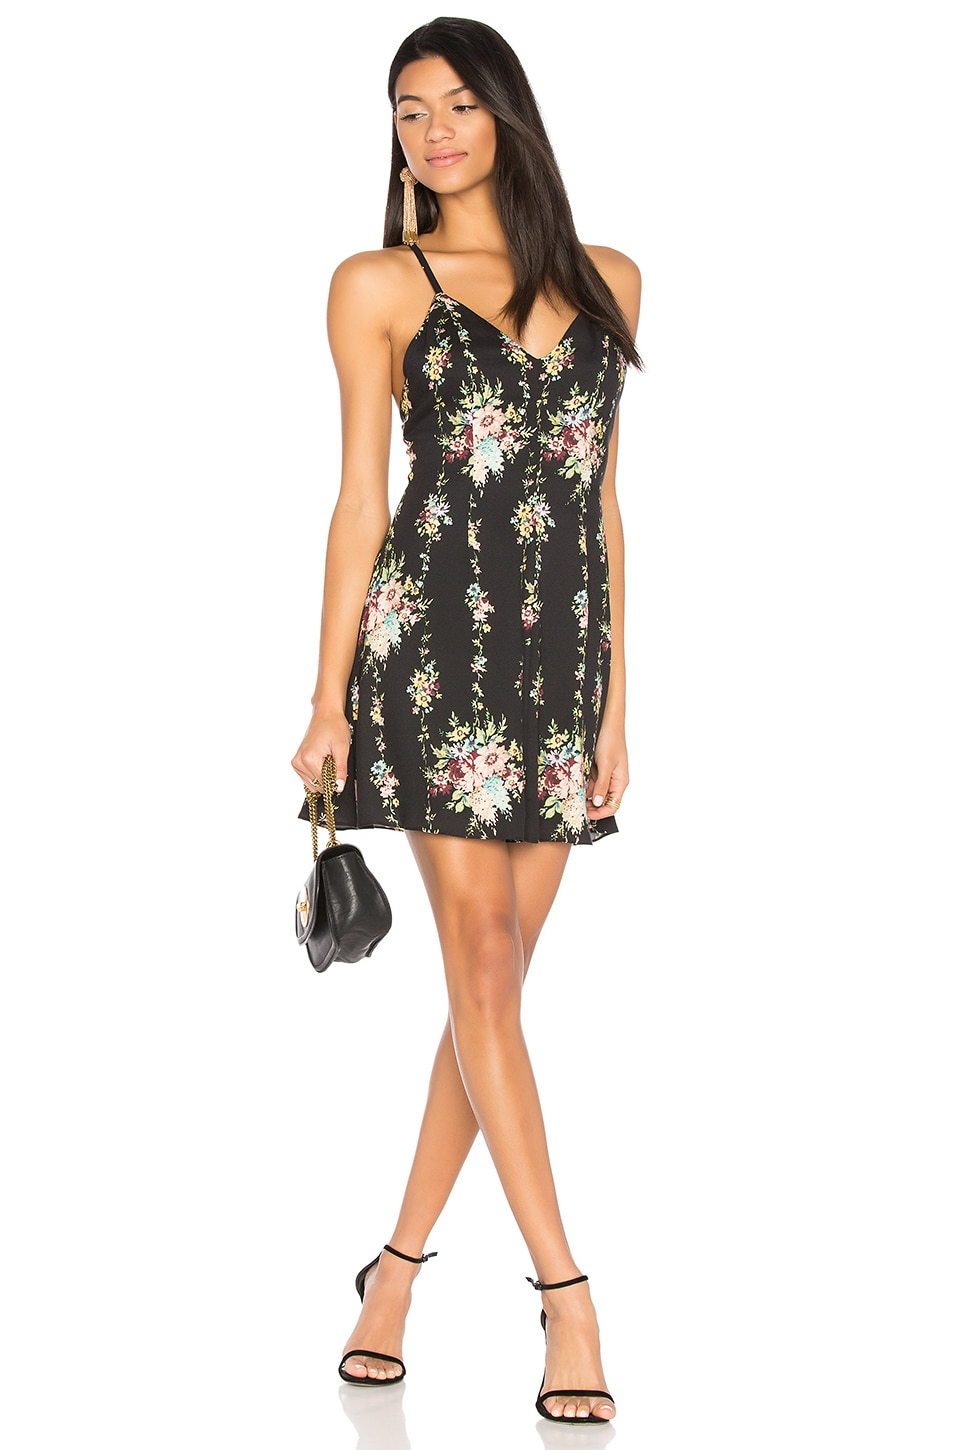 Alice + Olivia Alves Dress in Vintage Bouquet & Black